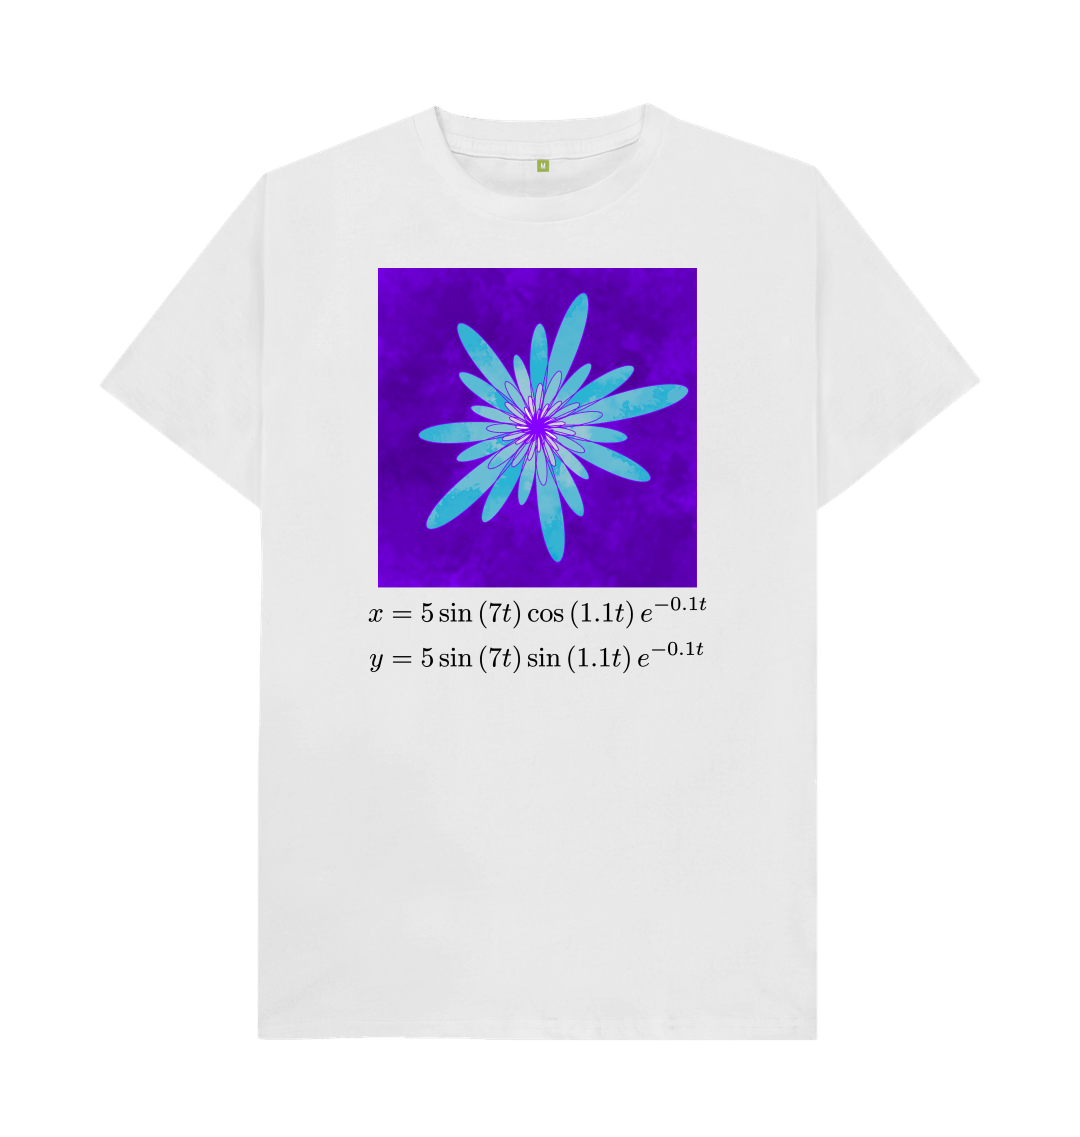 White Spirally Flower With Equations - Loose Fit